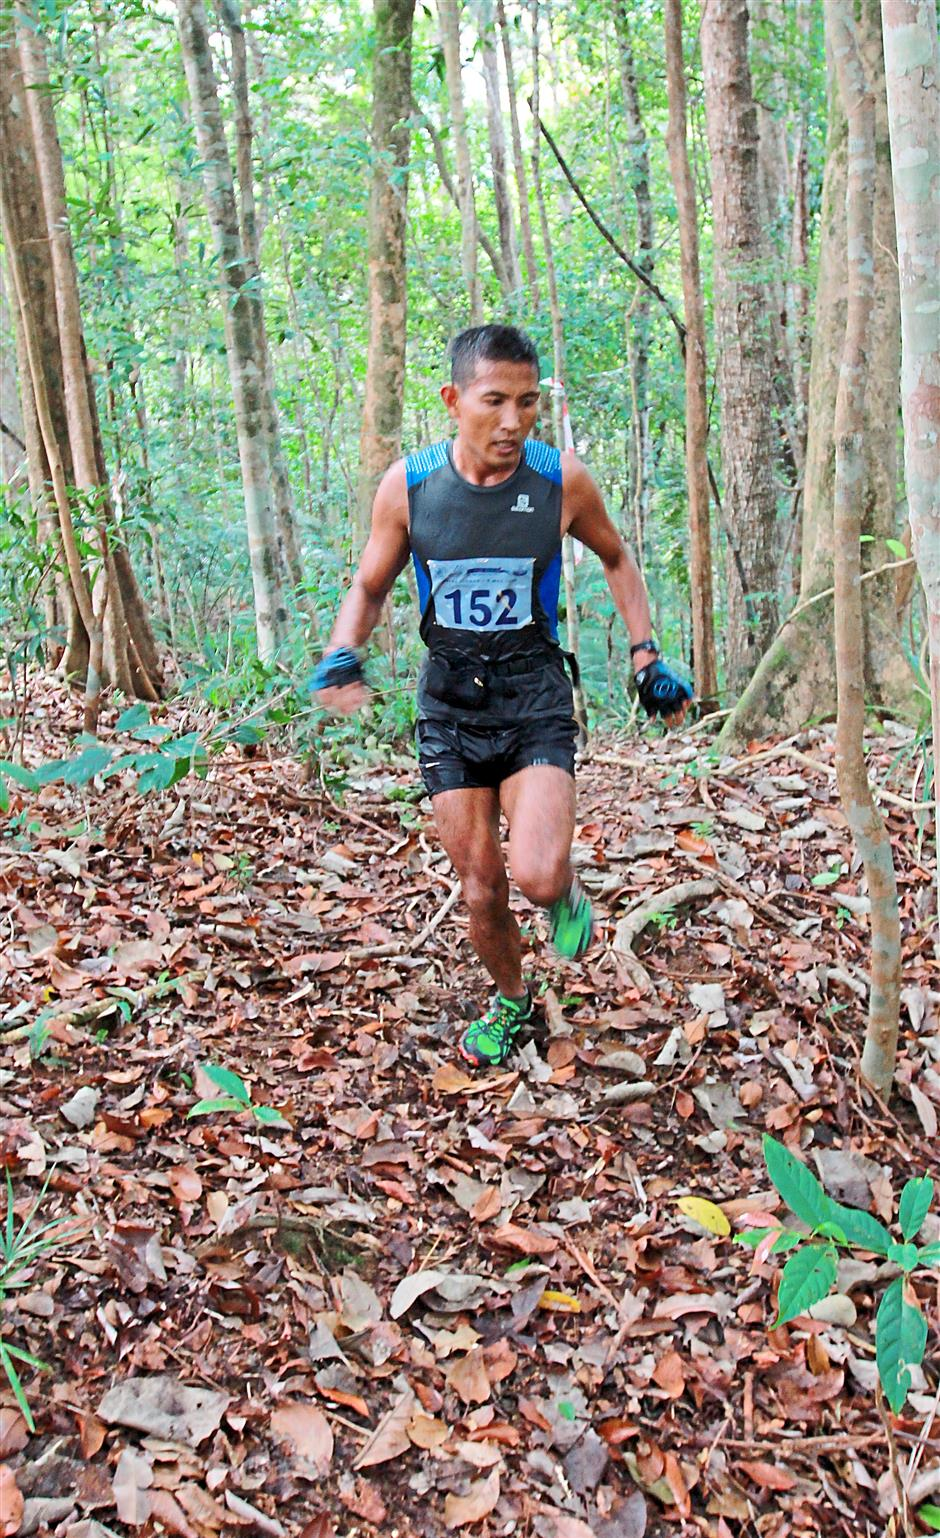 A runner in the midst of going through the jungle.